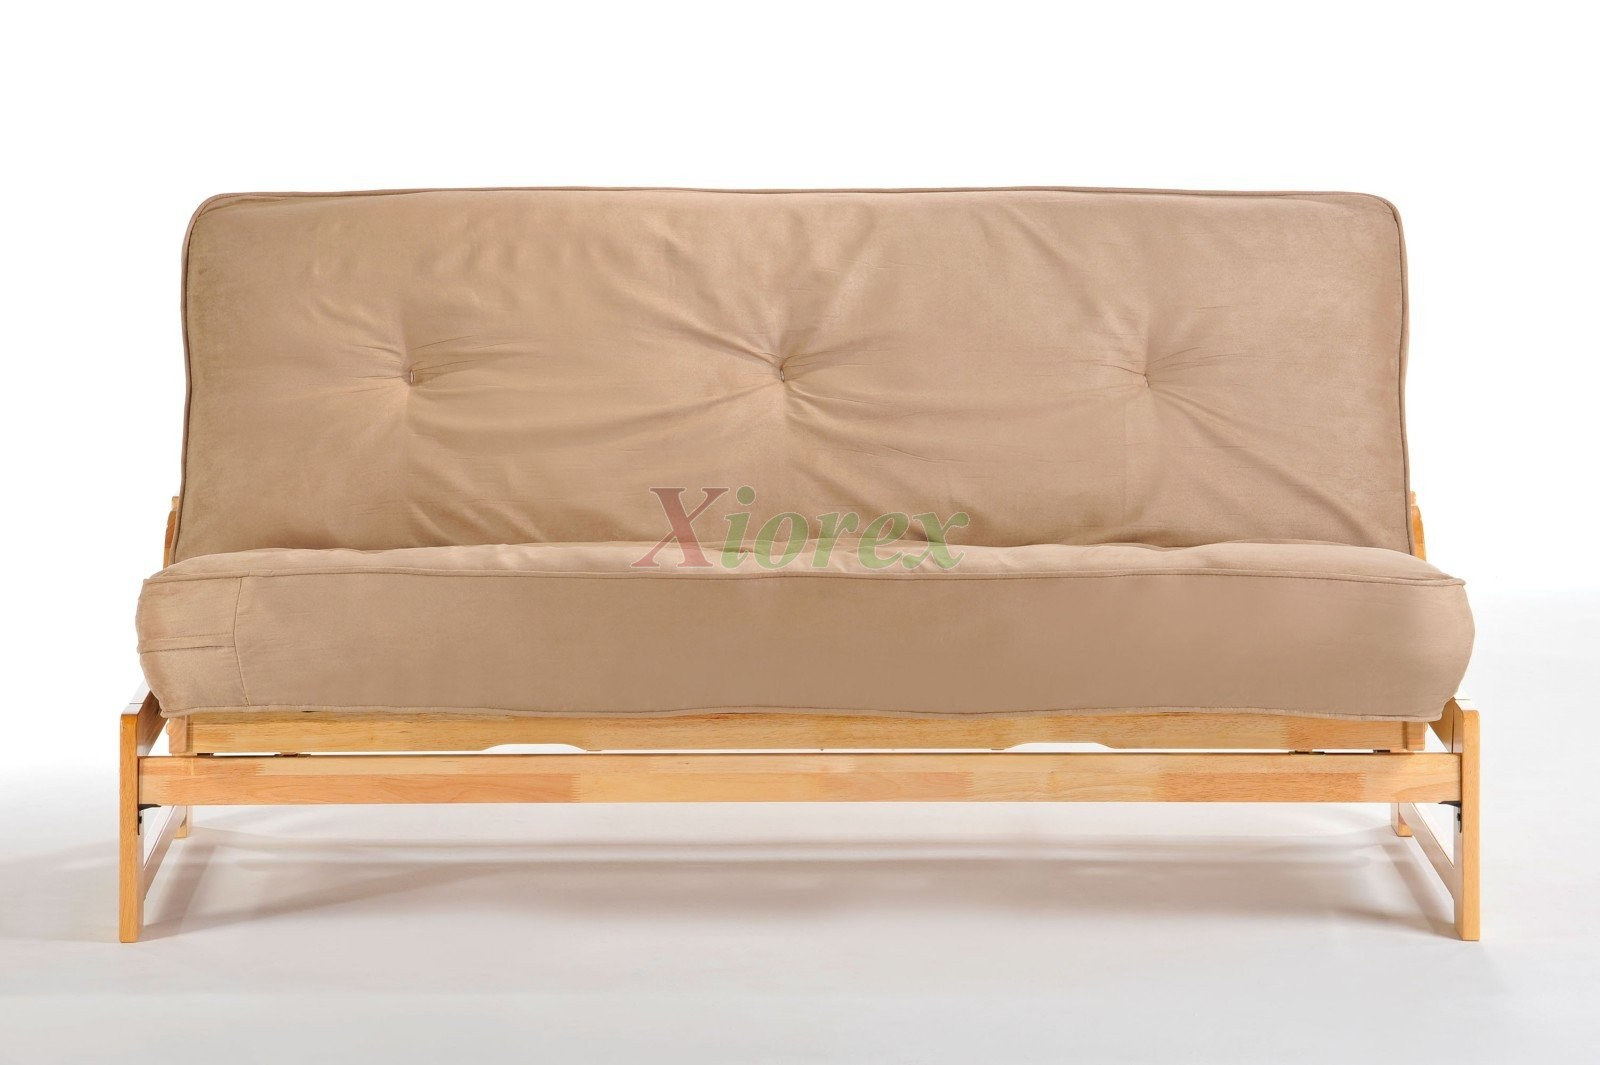 Seaside Full Size Futon Mattress Queen N D Xiorex